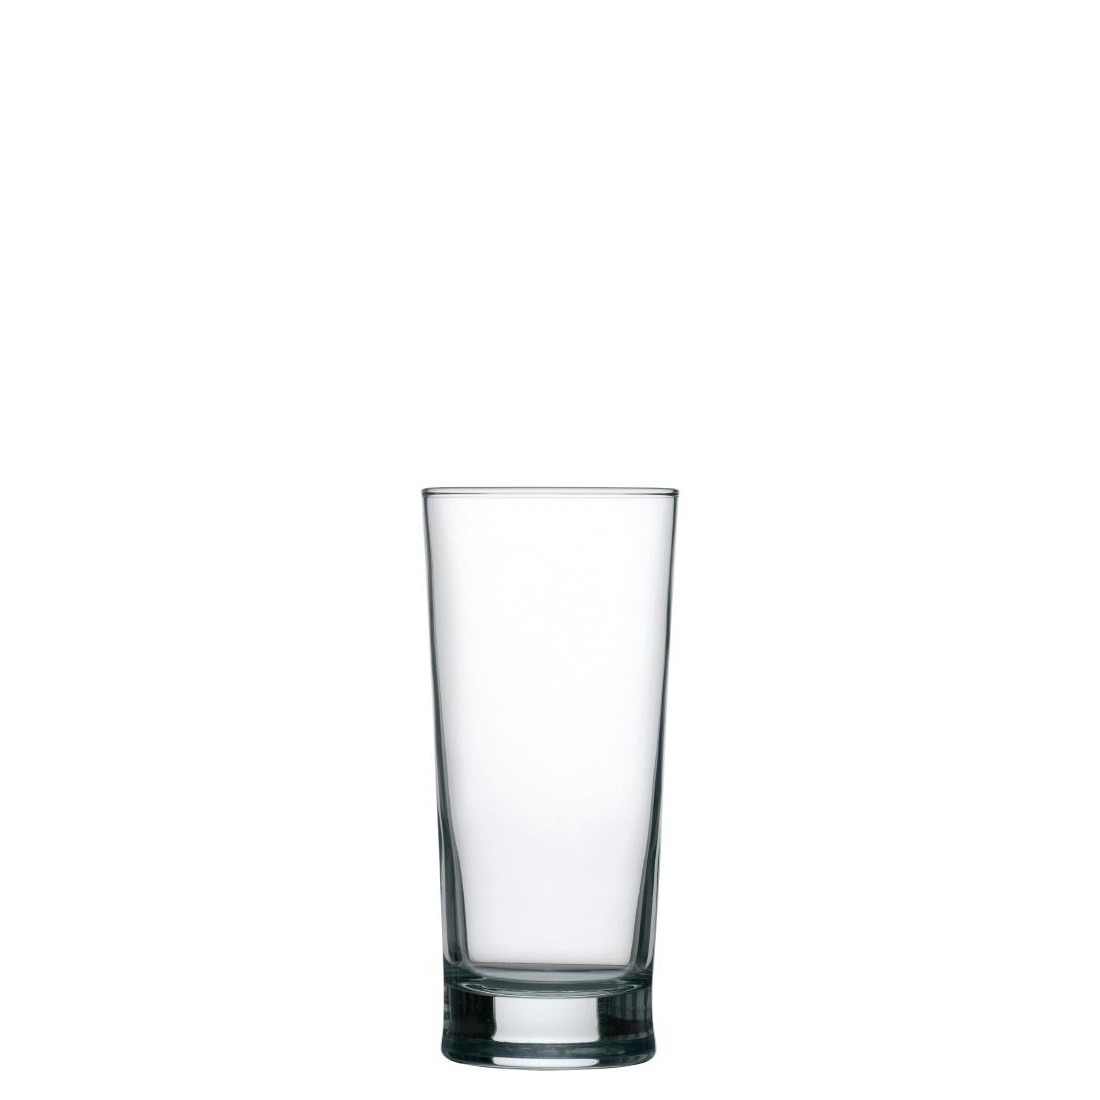 Senator Nucleated Conical Beer Glasses 280ml CE Marked